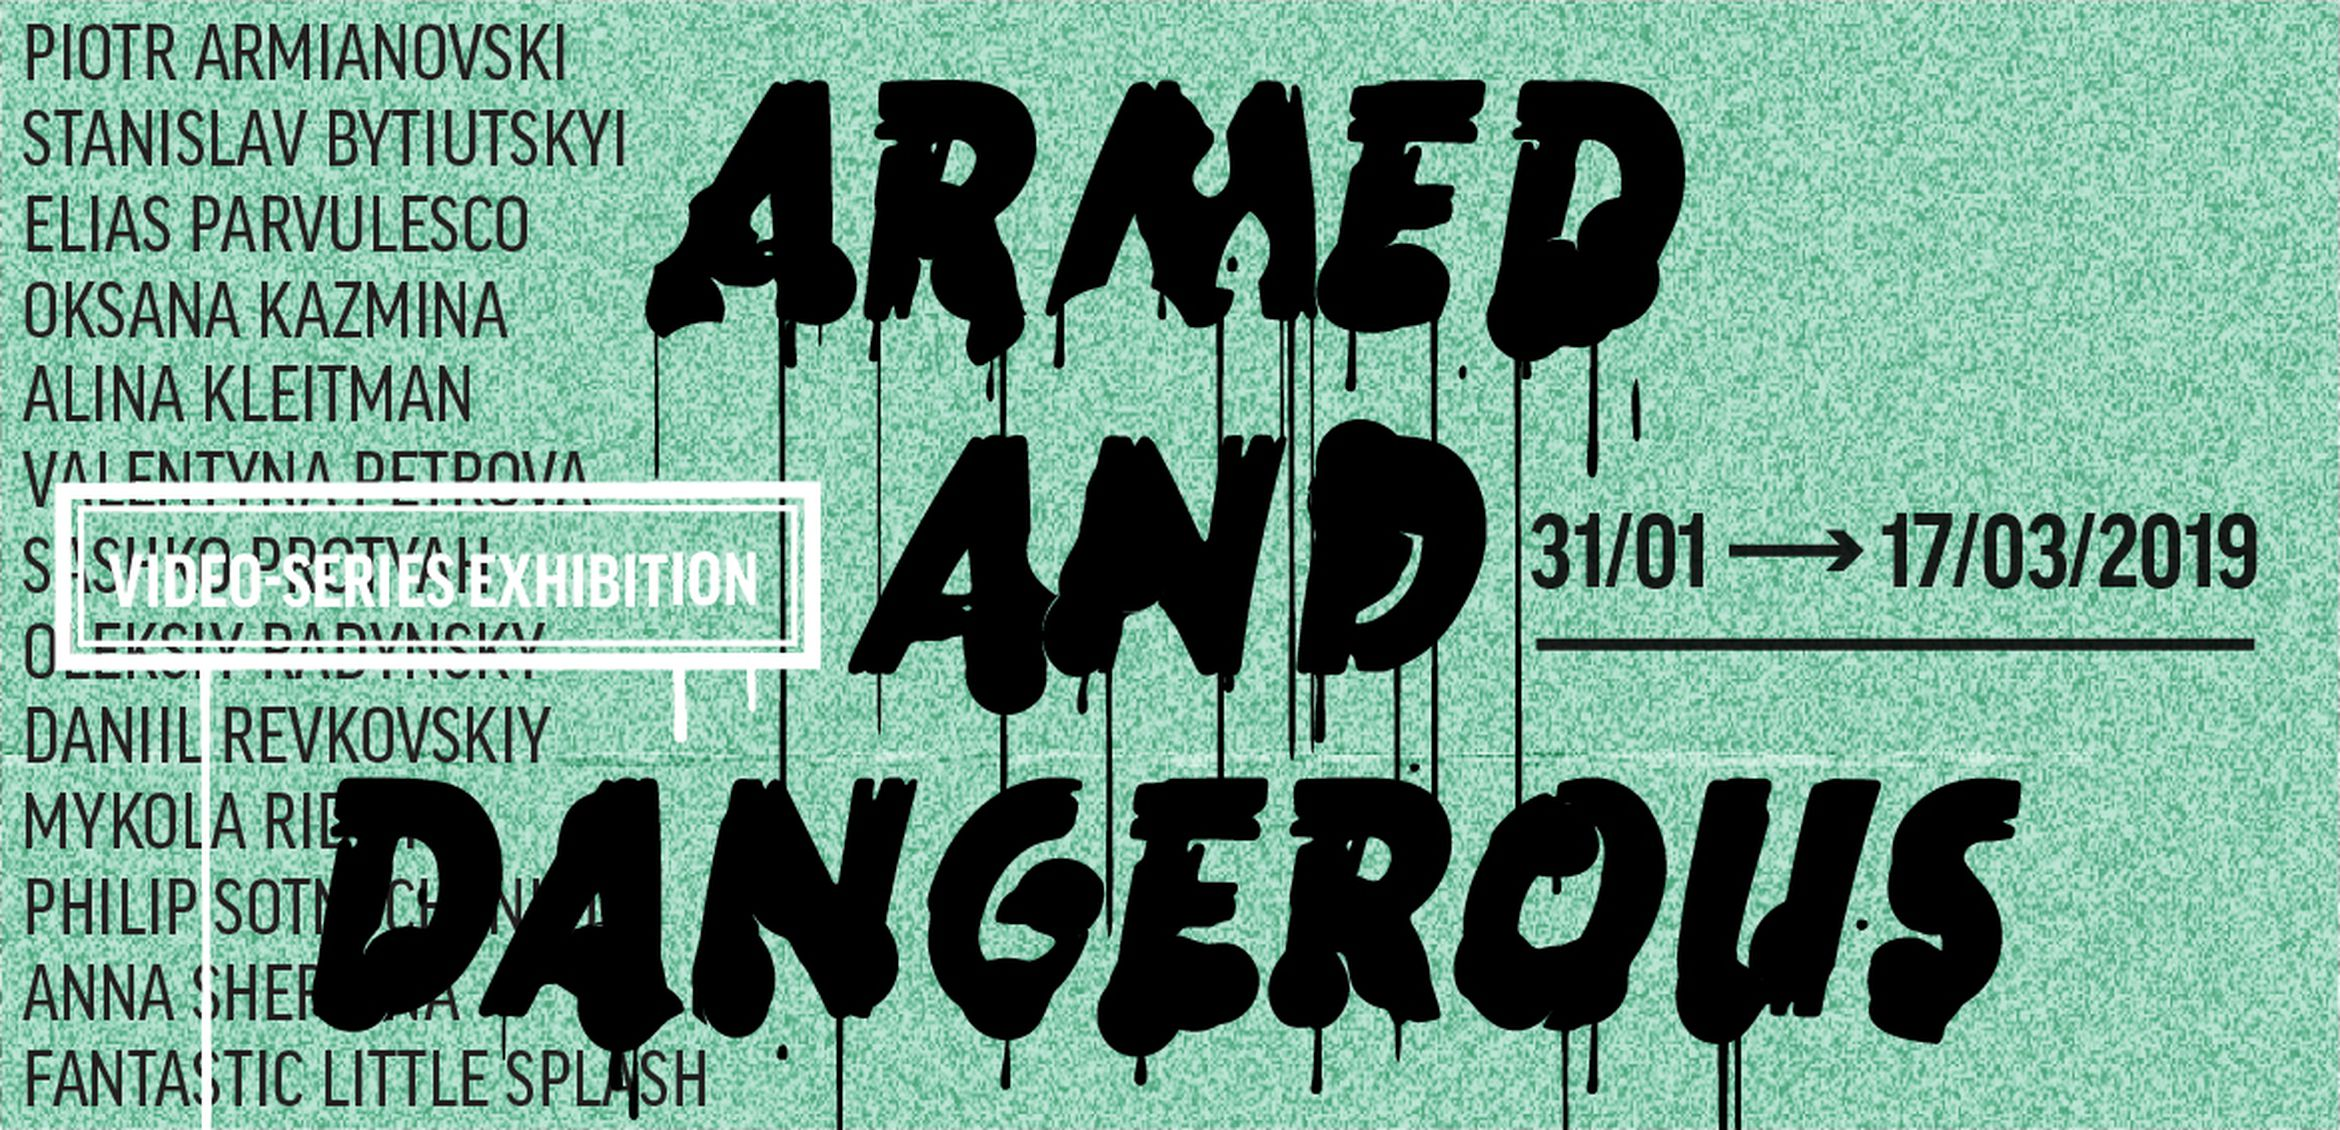 Armed and Dangerous Video-Series Exhibition